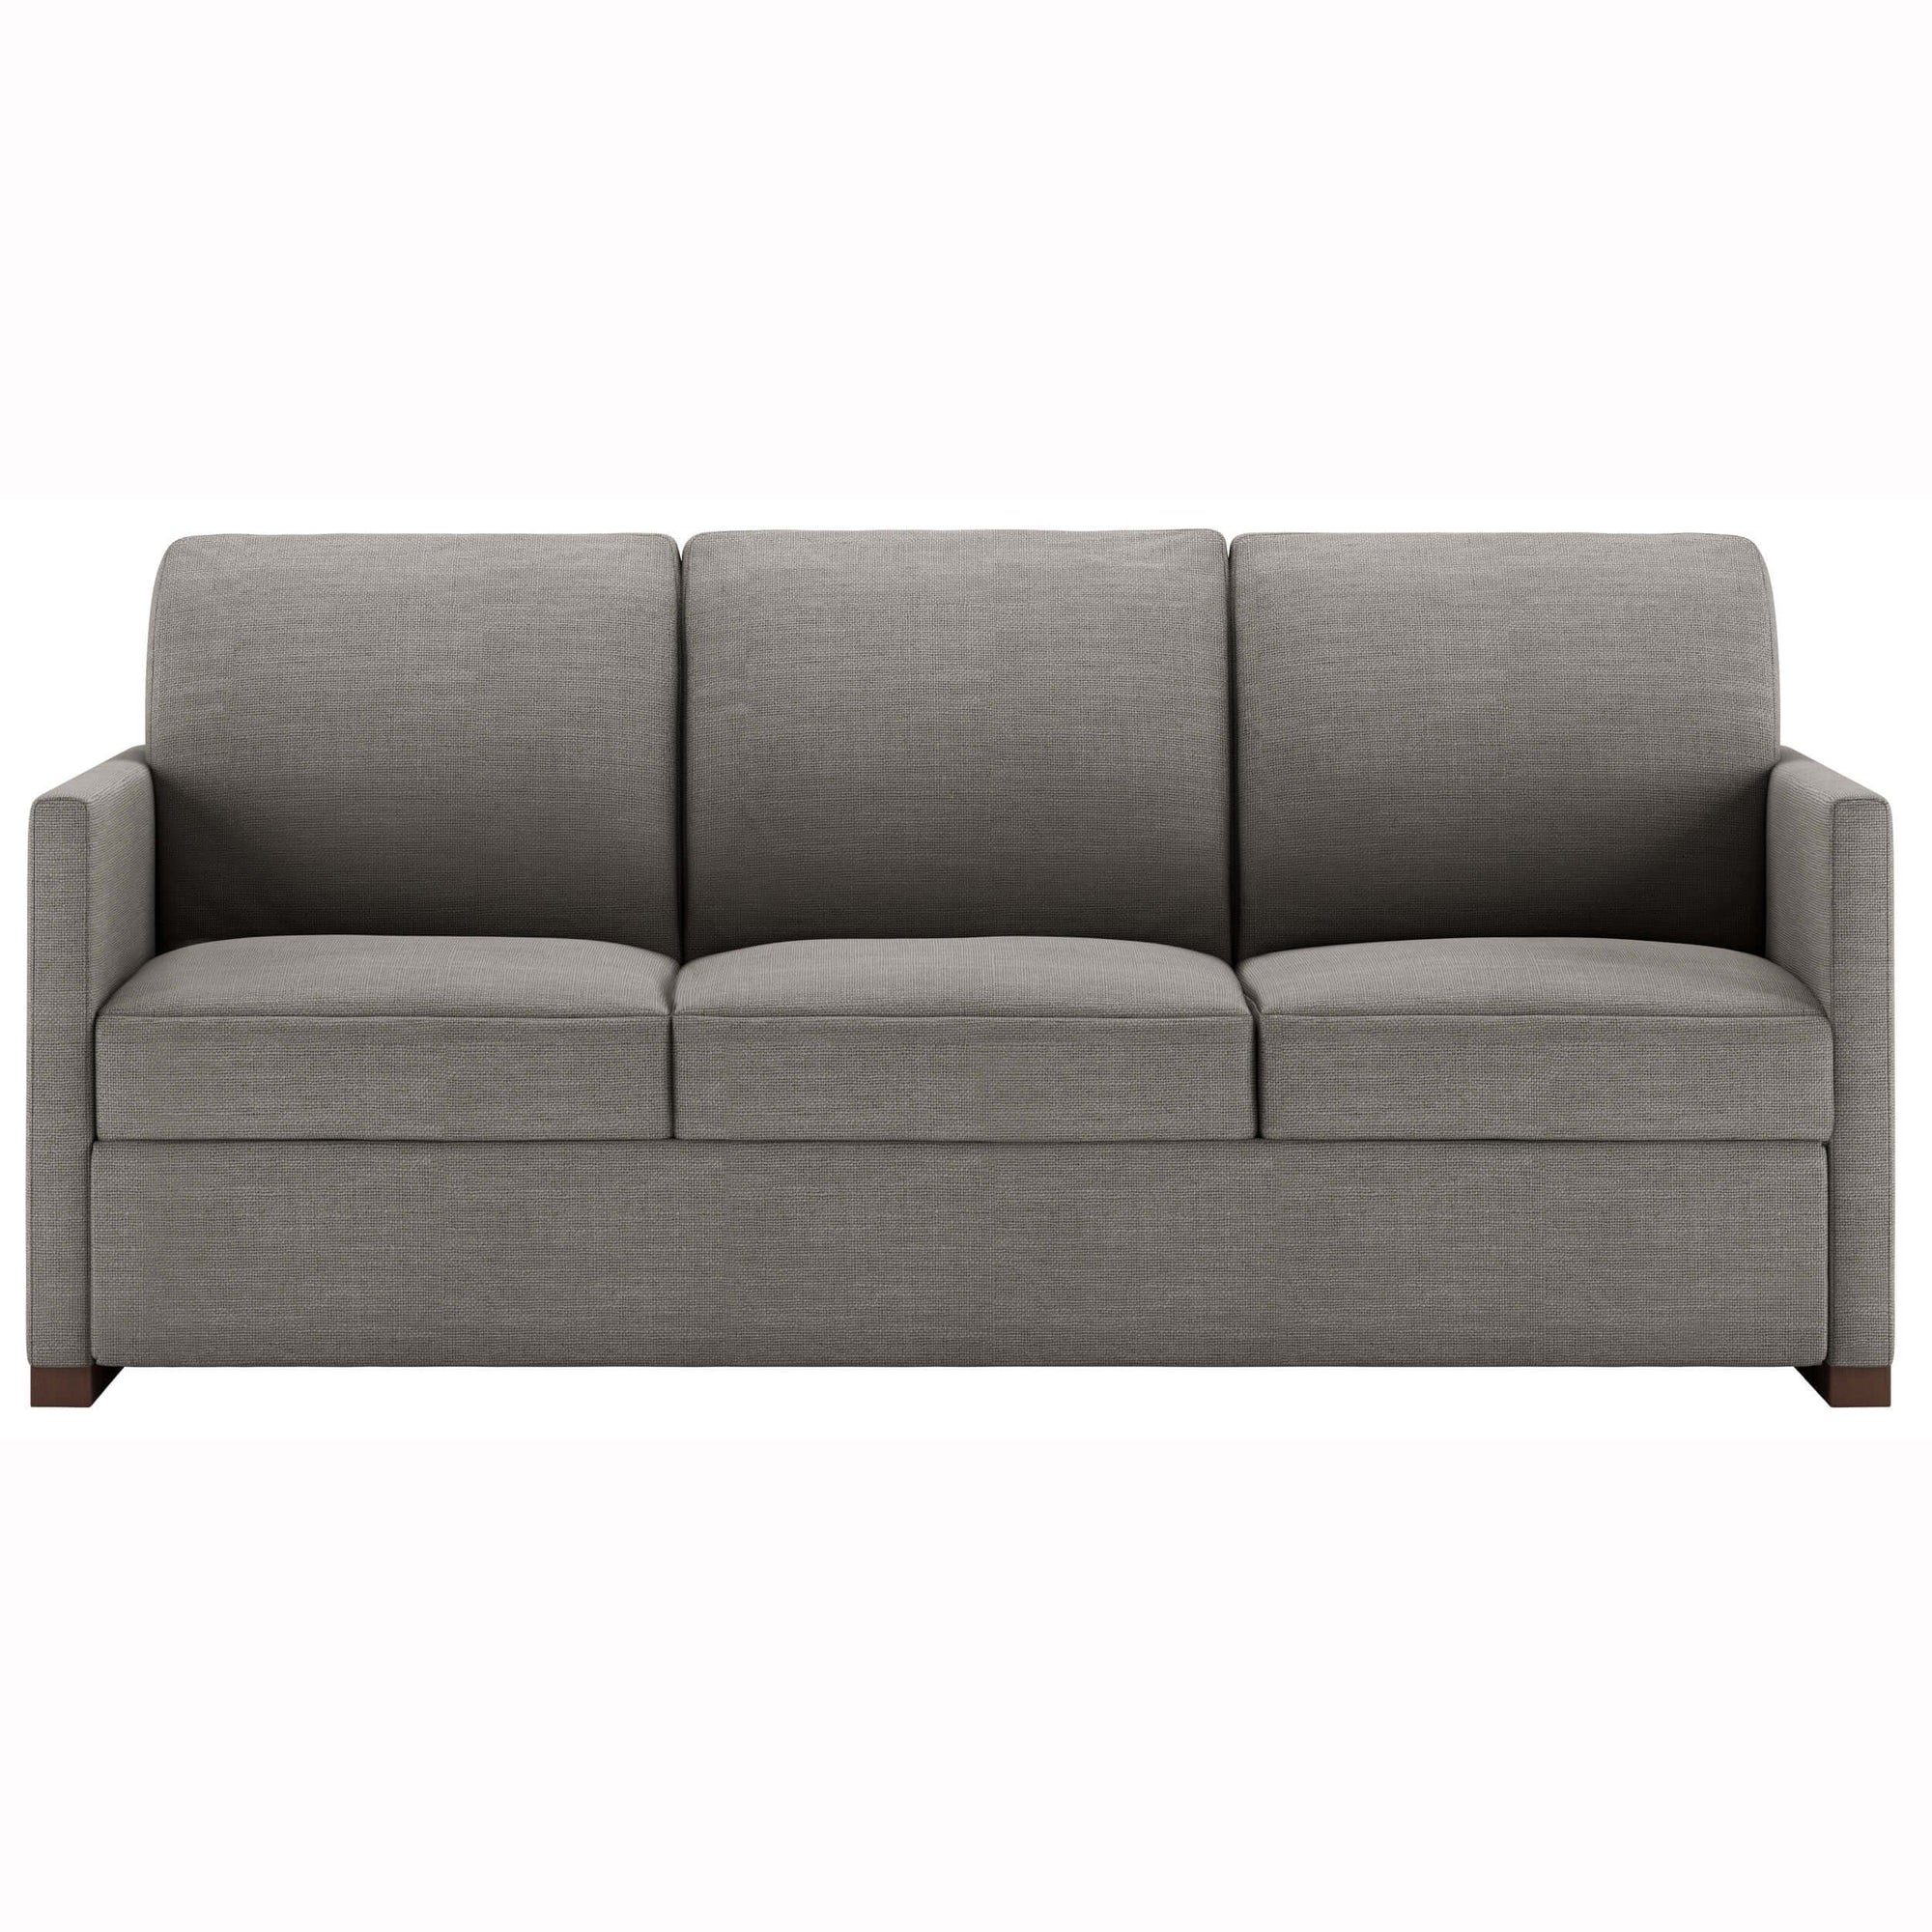 American Leather Pearson Queen Sleeper Sofa, Epic Gray